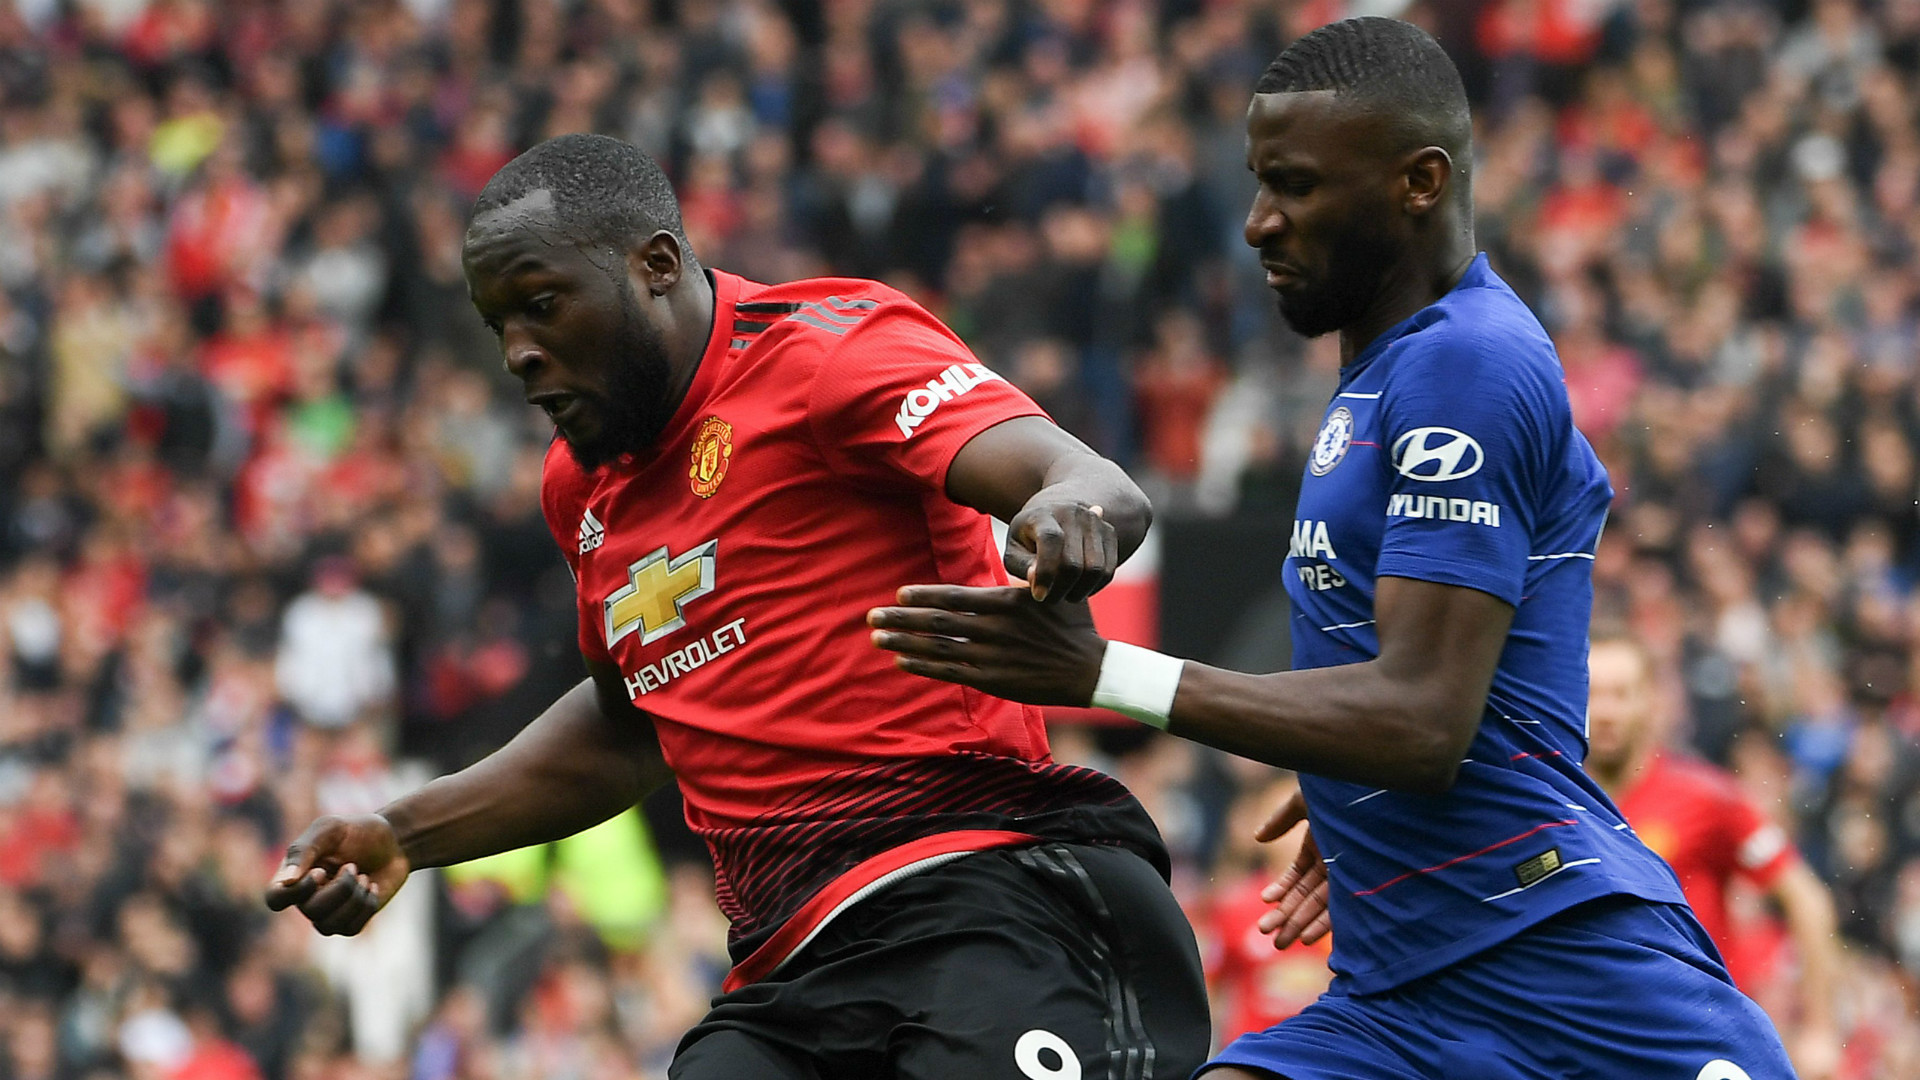 Manchester United News: Romelu Lukaku Looks Unfit & Is